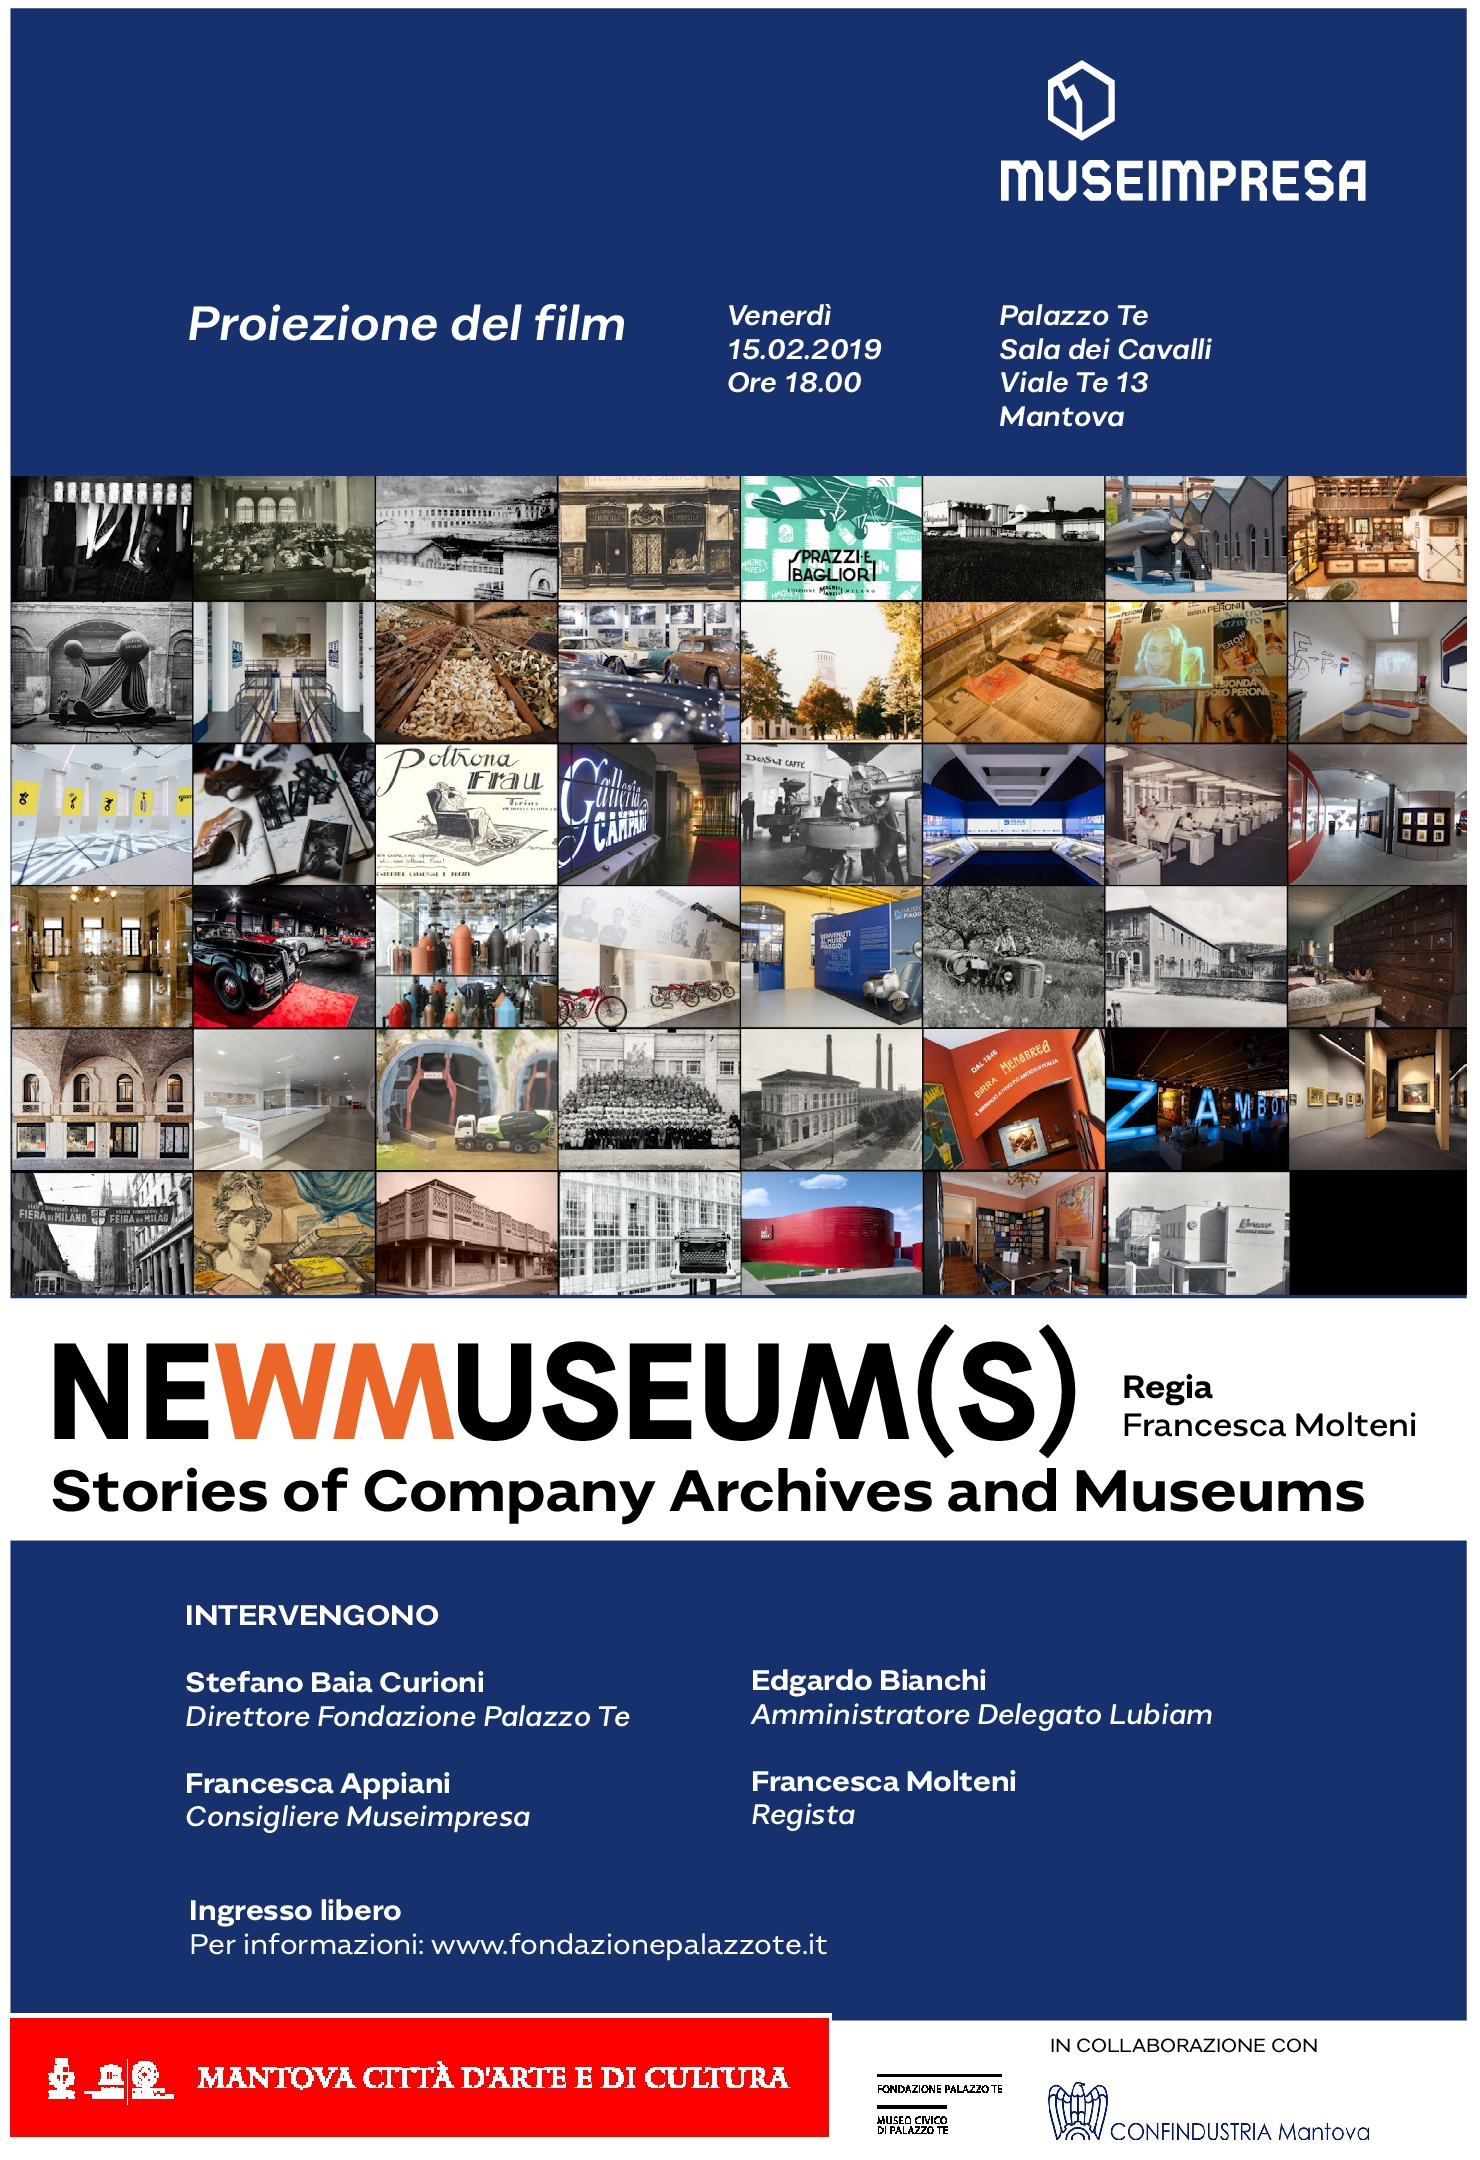 Proiezione del film NEWMUSEUM(S), Stories of Company Archives of Museums